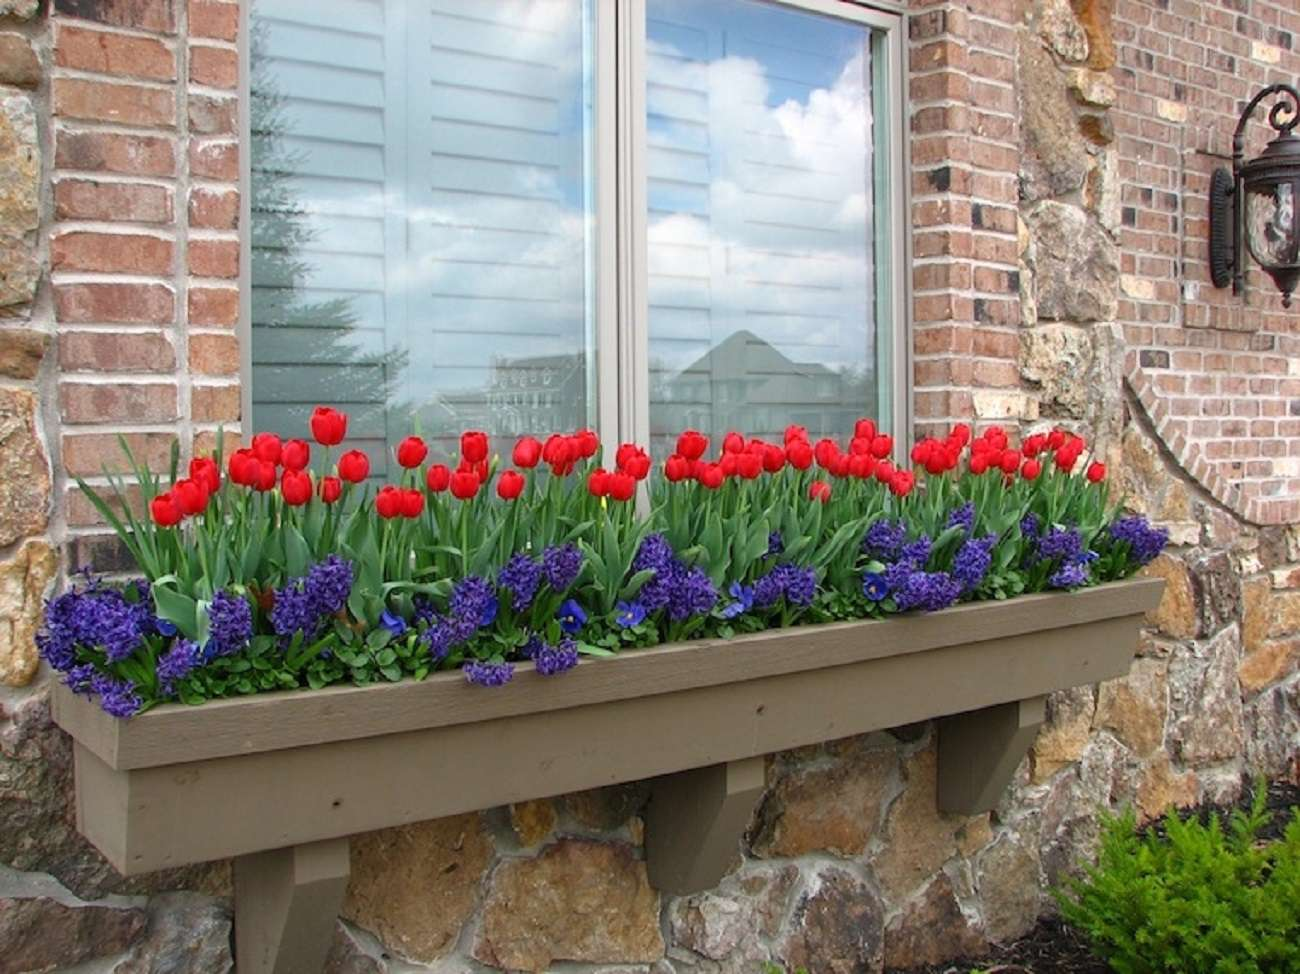 flower box idea with tulips